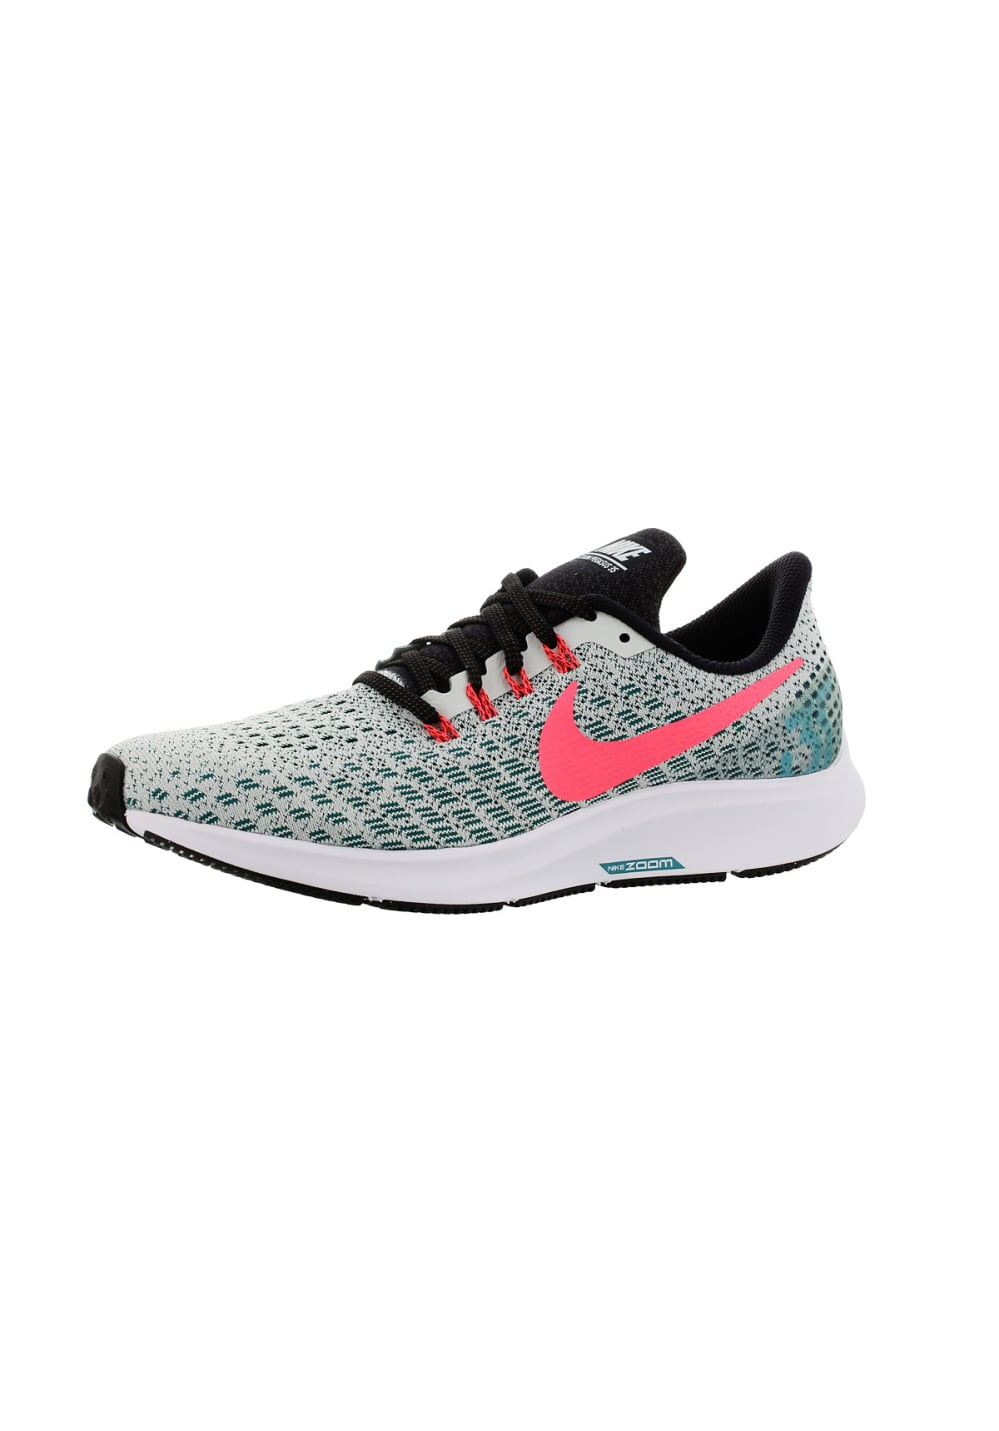 meilleur service 11c48 9567b Nike Air Zoom Pegasus 35 - Running shoes for Women - Grey